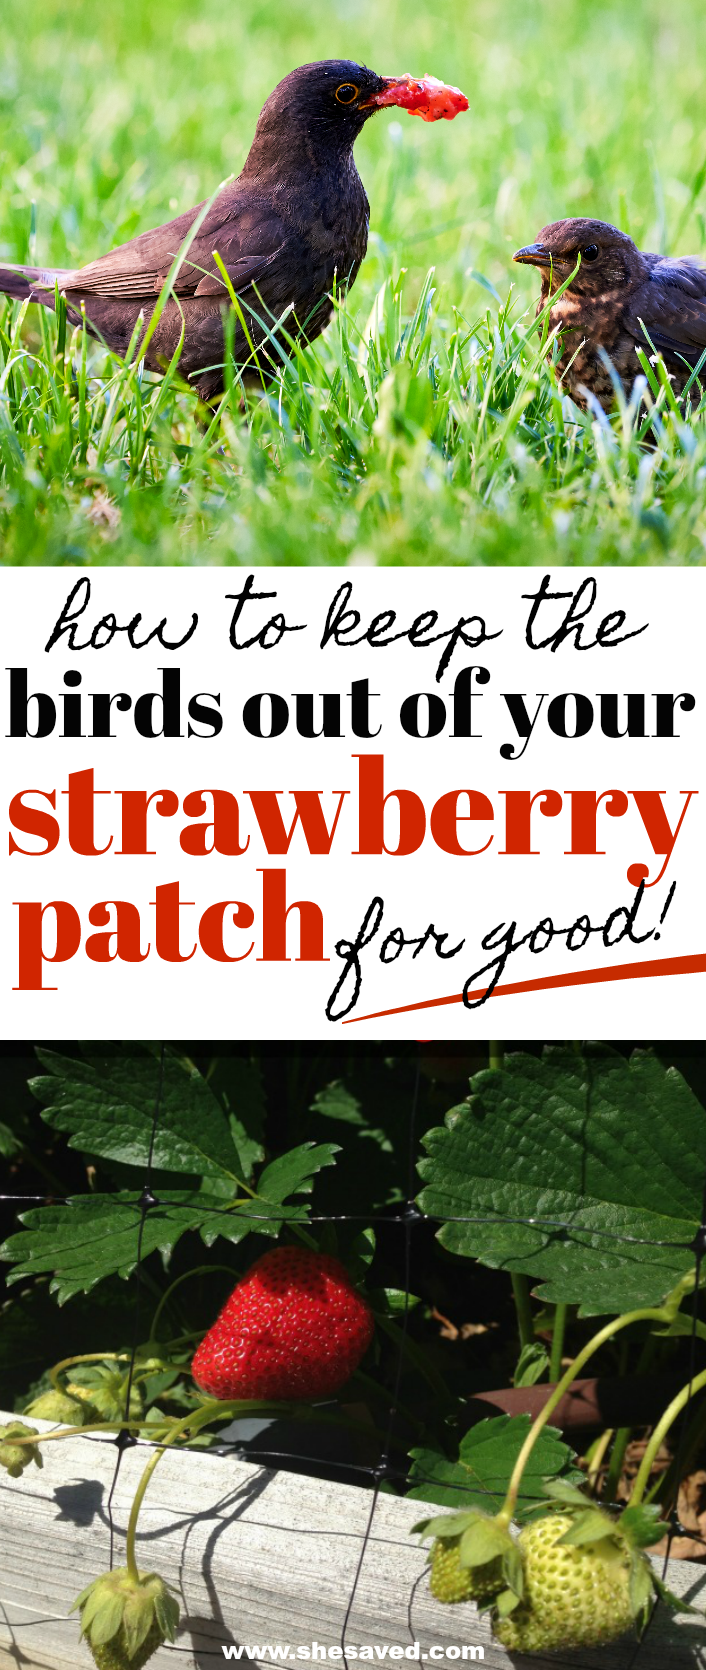 how to keep birds out of strawberry patch